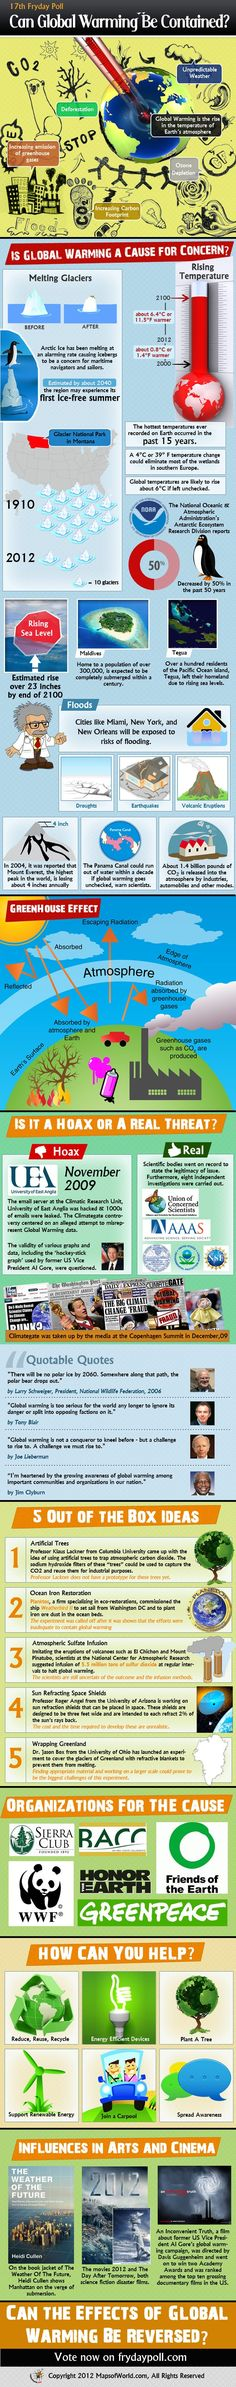 Can-Global-Warming-Be-Contained-infographic Find always more on http://infographicsmania.com